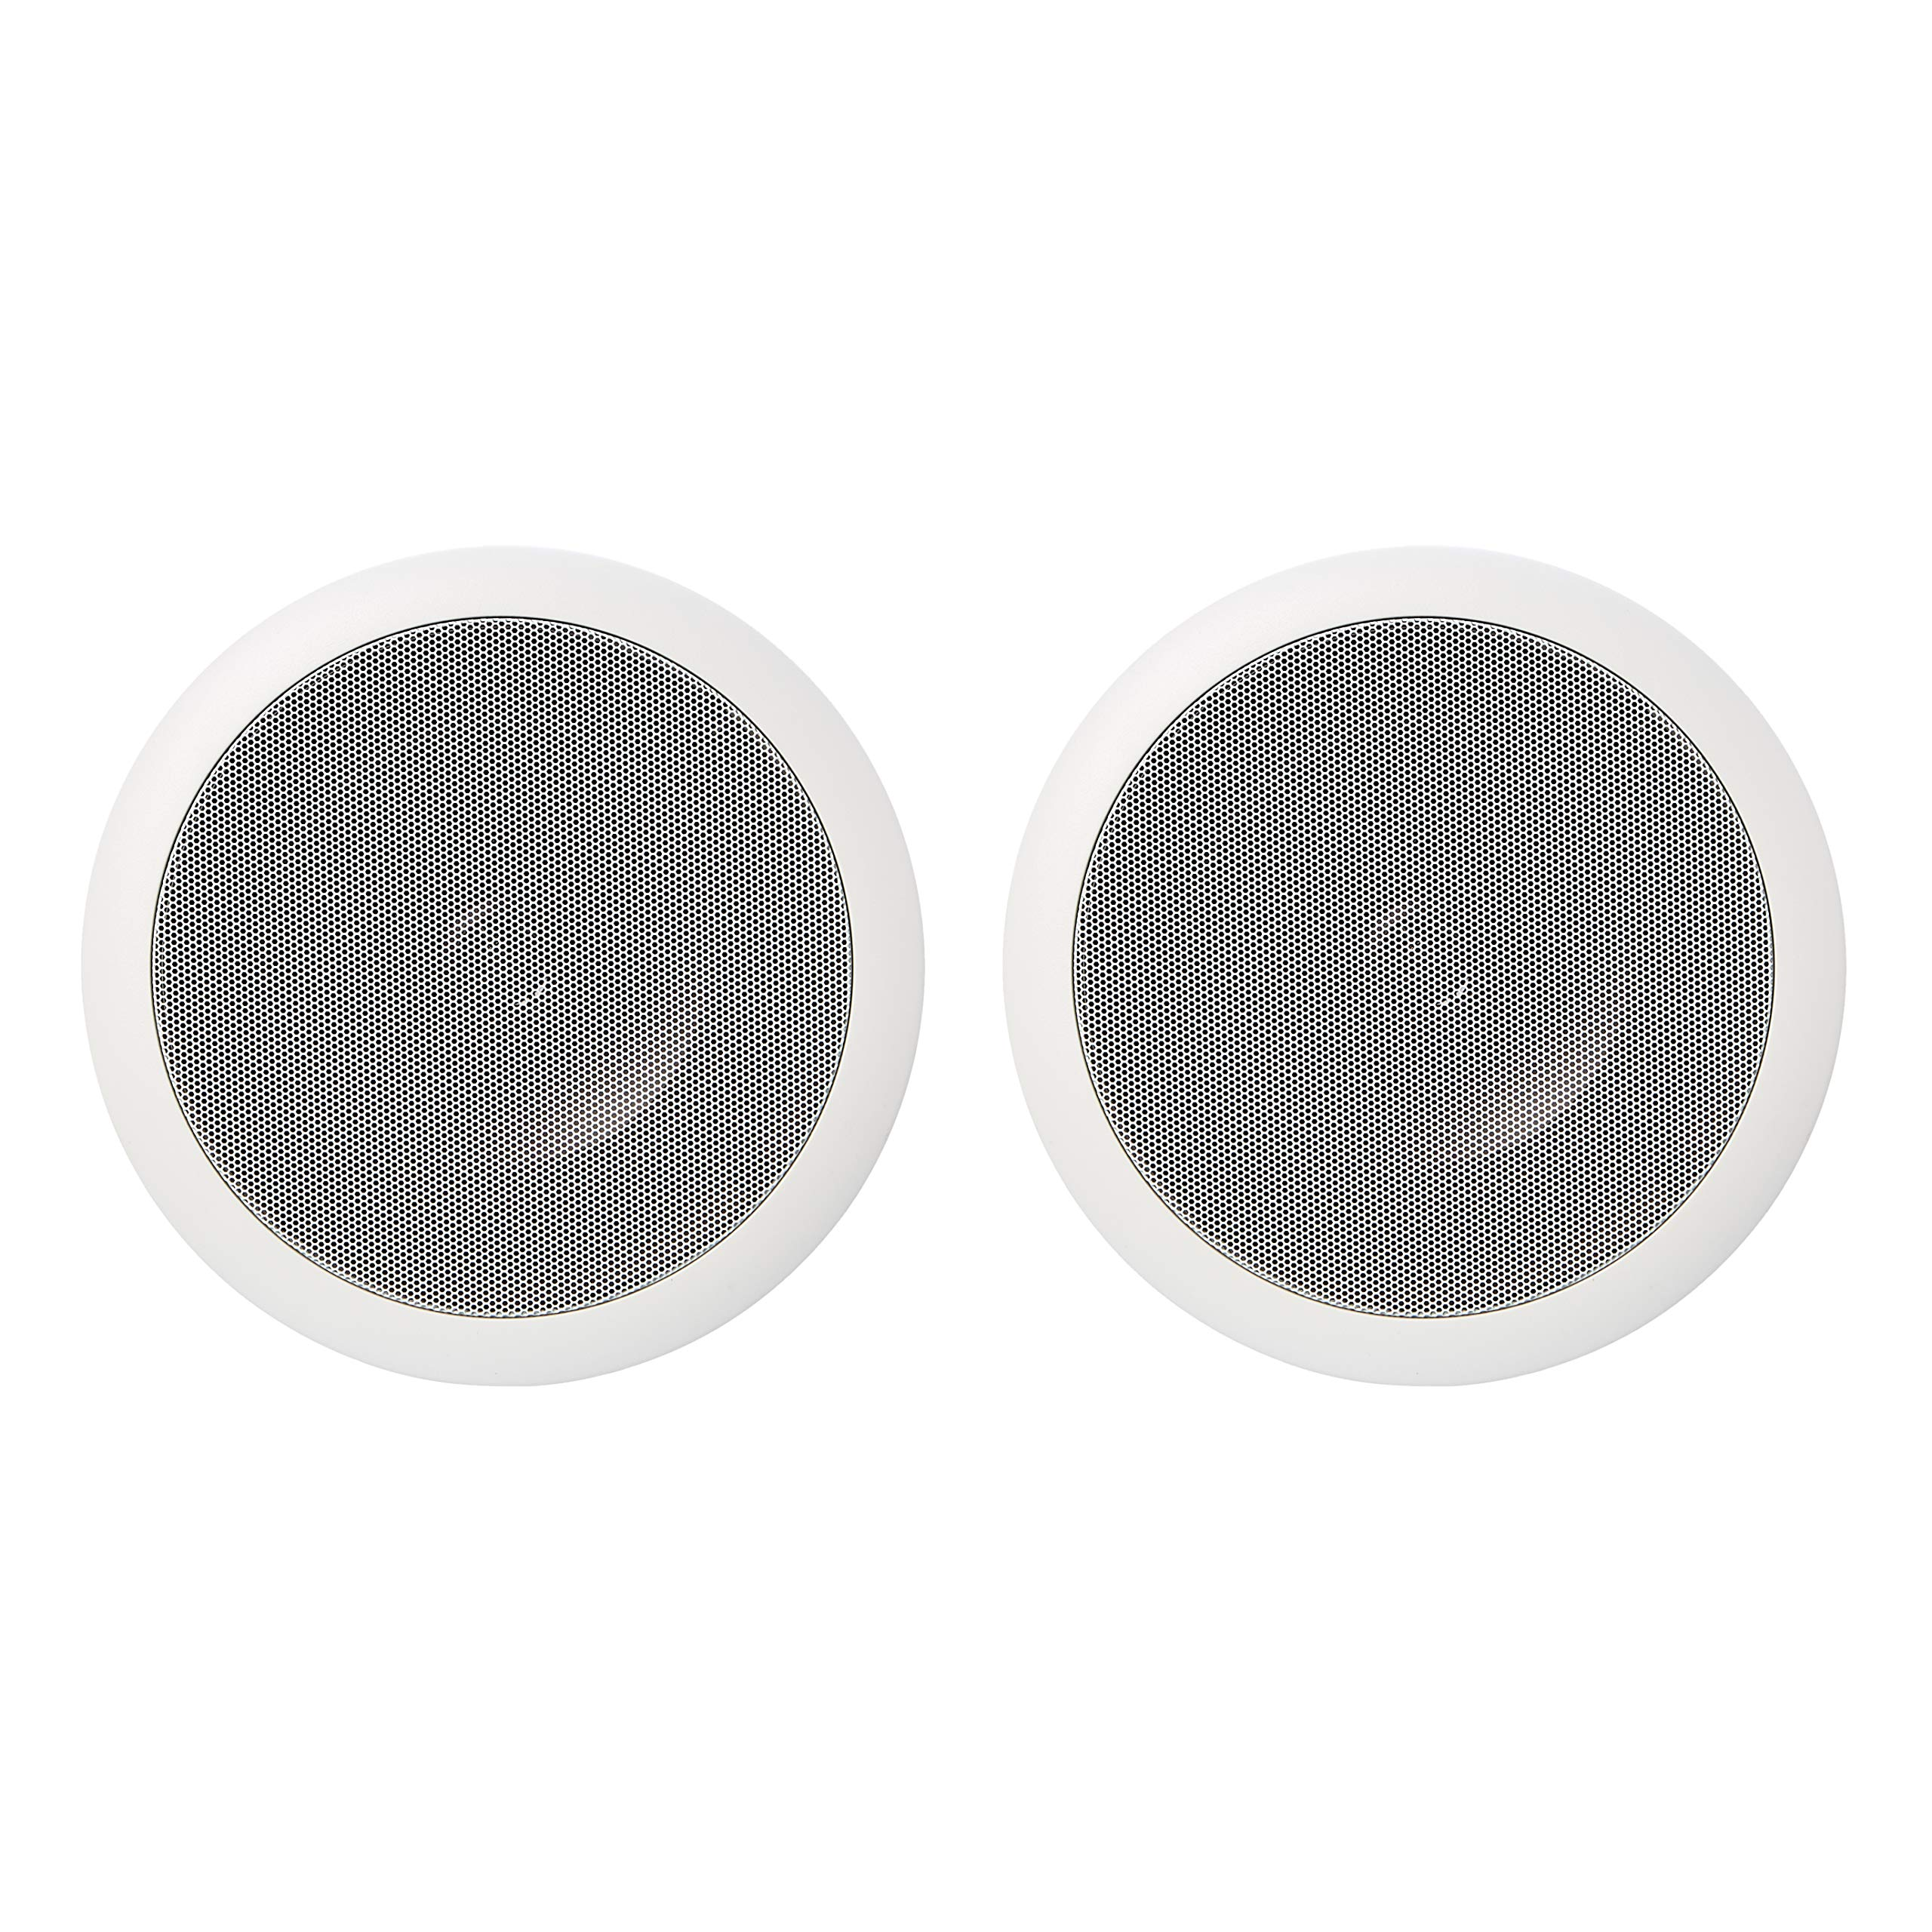 AmazonBasics 6.5'' Round In-Ceiling In-Wall Mounted Speakers, Set of 2 by AmazonBasics